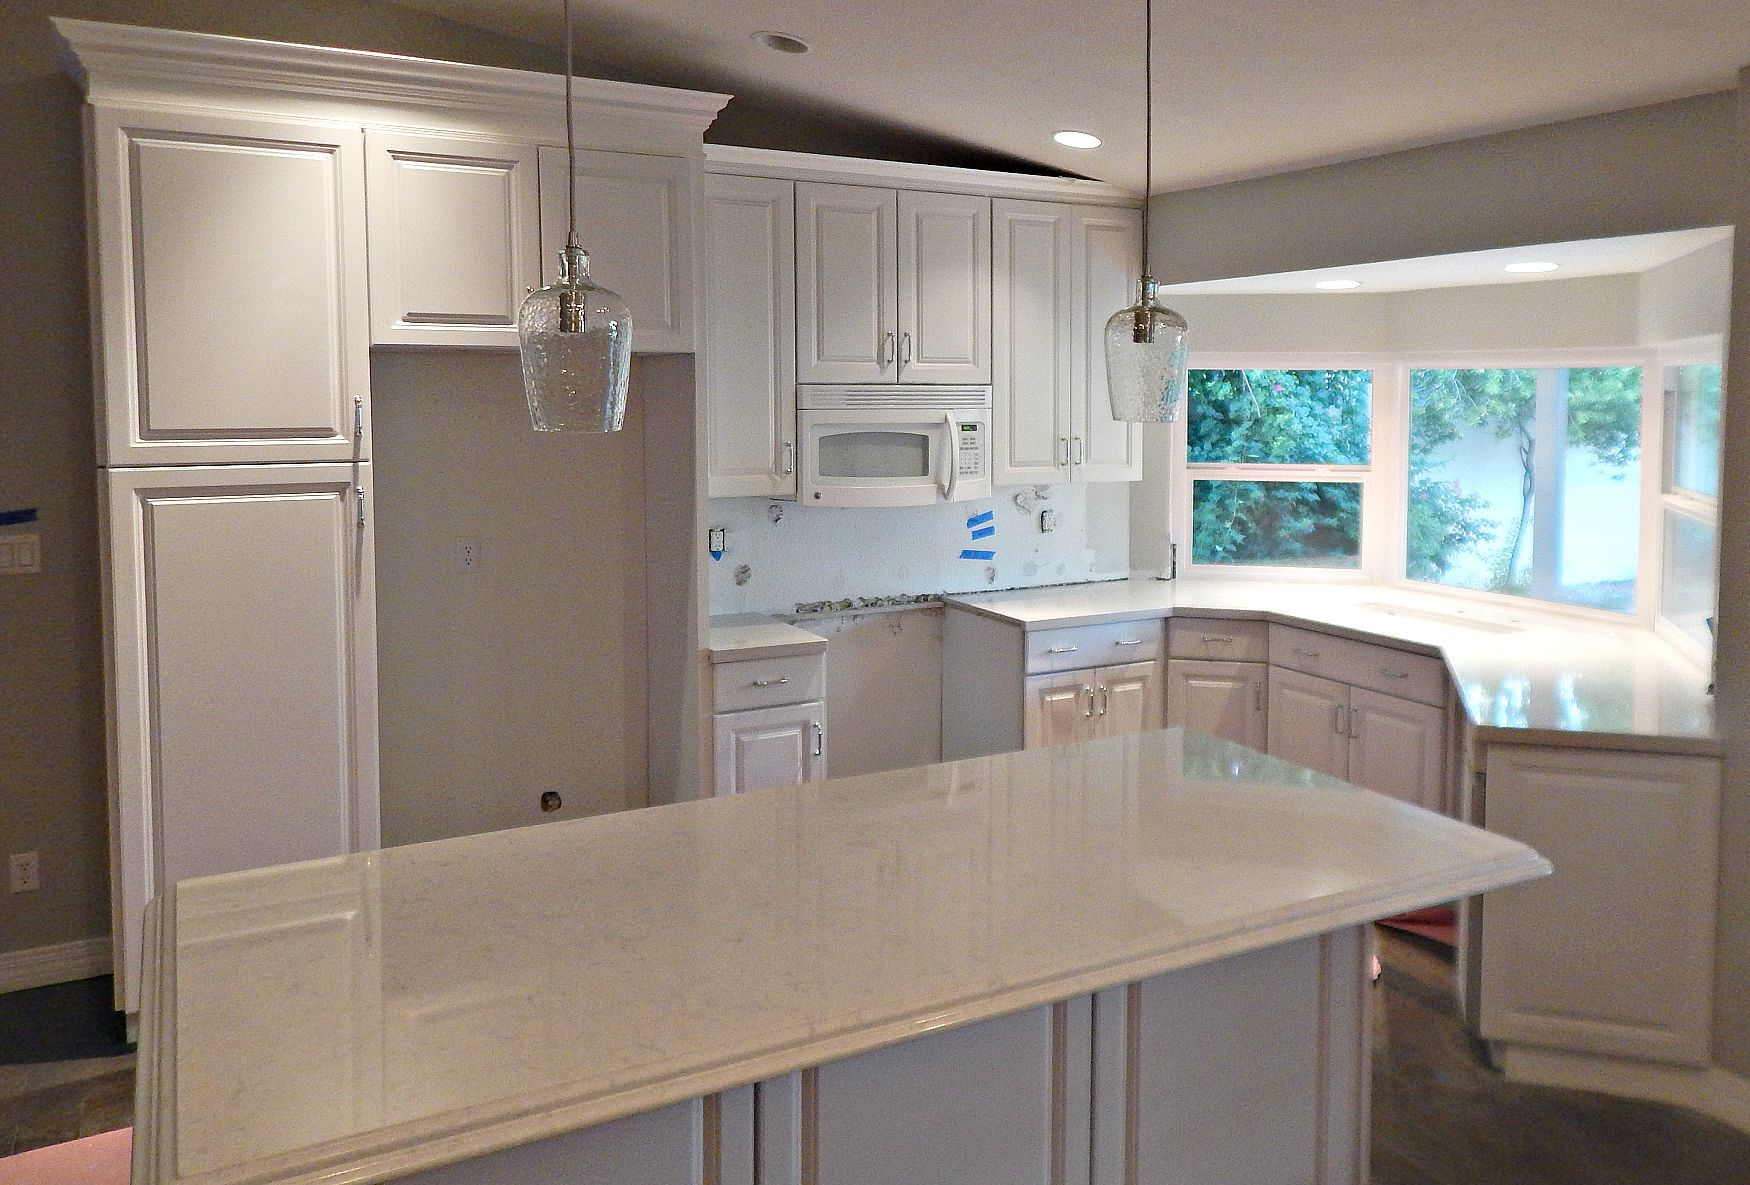 Silestone Lagoon Quartz Countertop Remodel With Double Ogee Edge